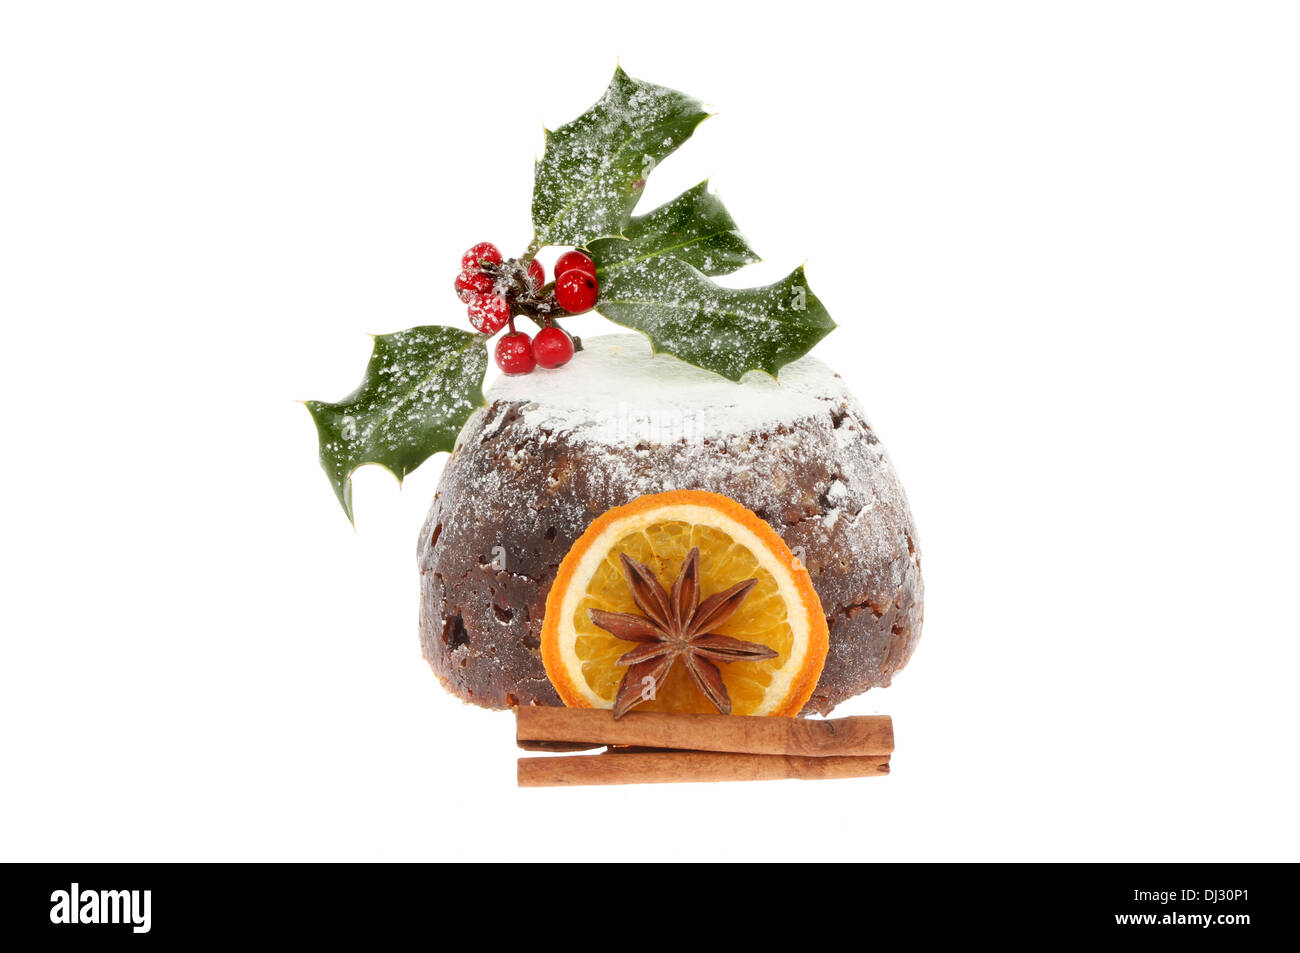 Christmas pudding dusted with icing sugar and decorated with spice and holly isolated against white - Stock Image